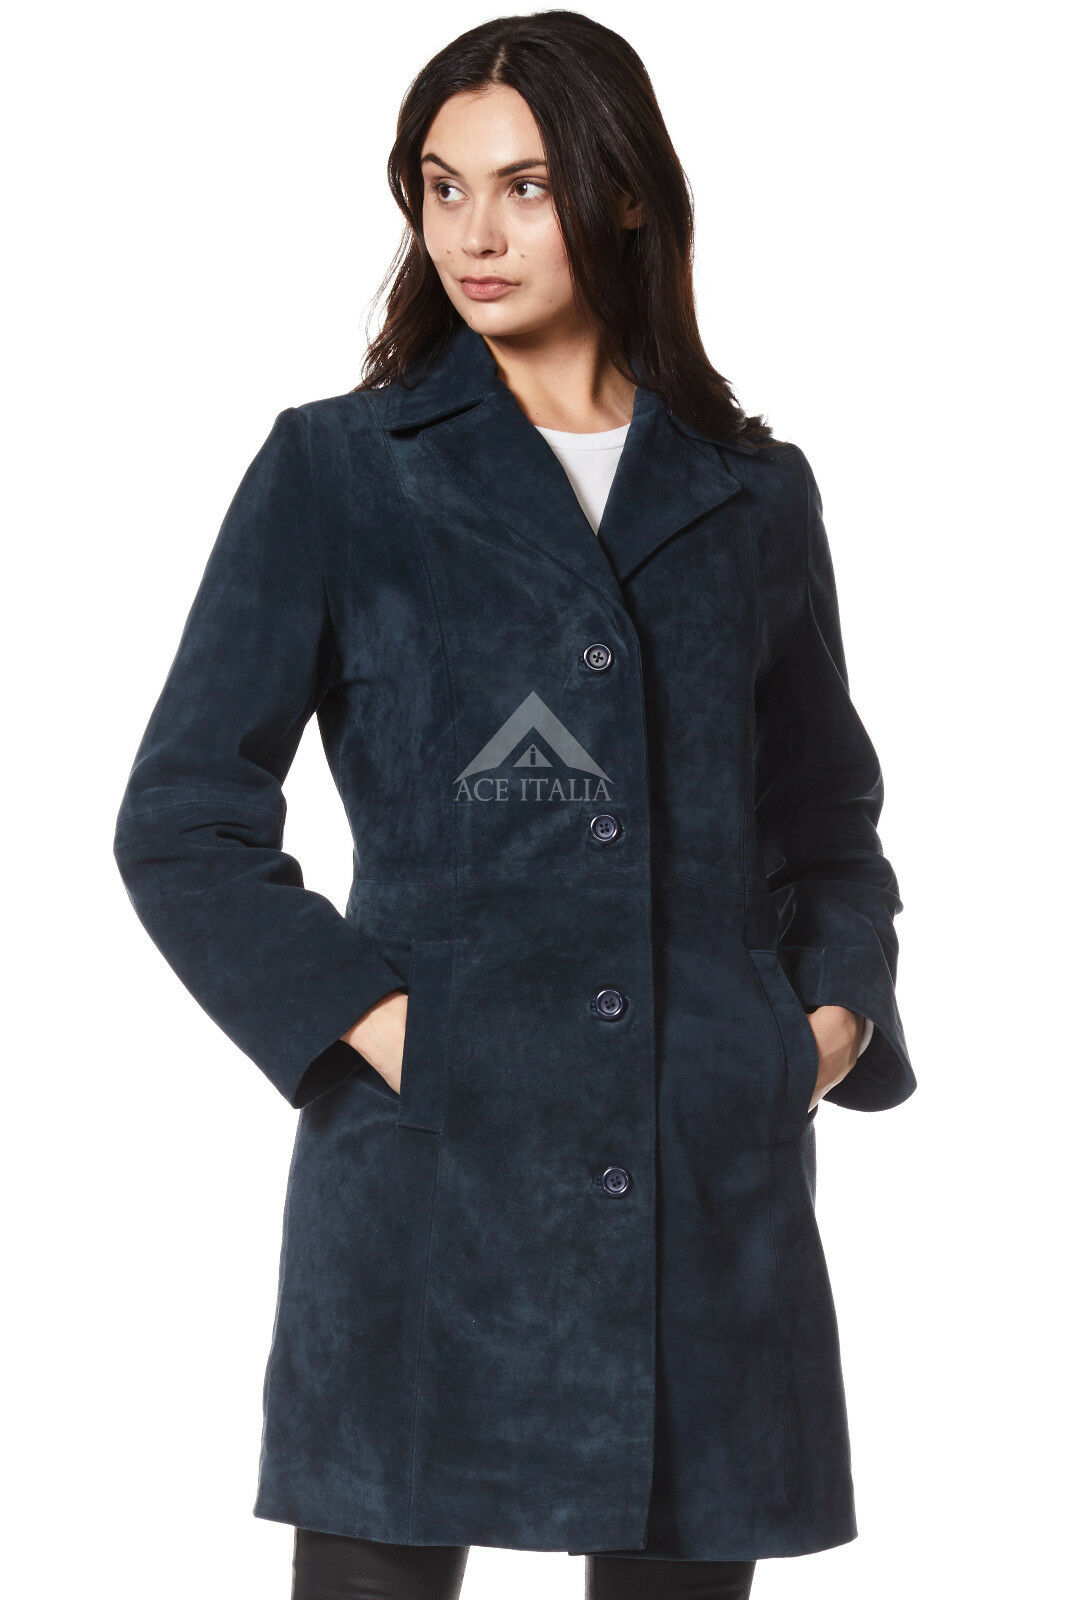 TRENCH Ladies Real Suede Leather Coat Navy Clasic Knee-Length Designer Coat 3457